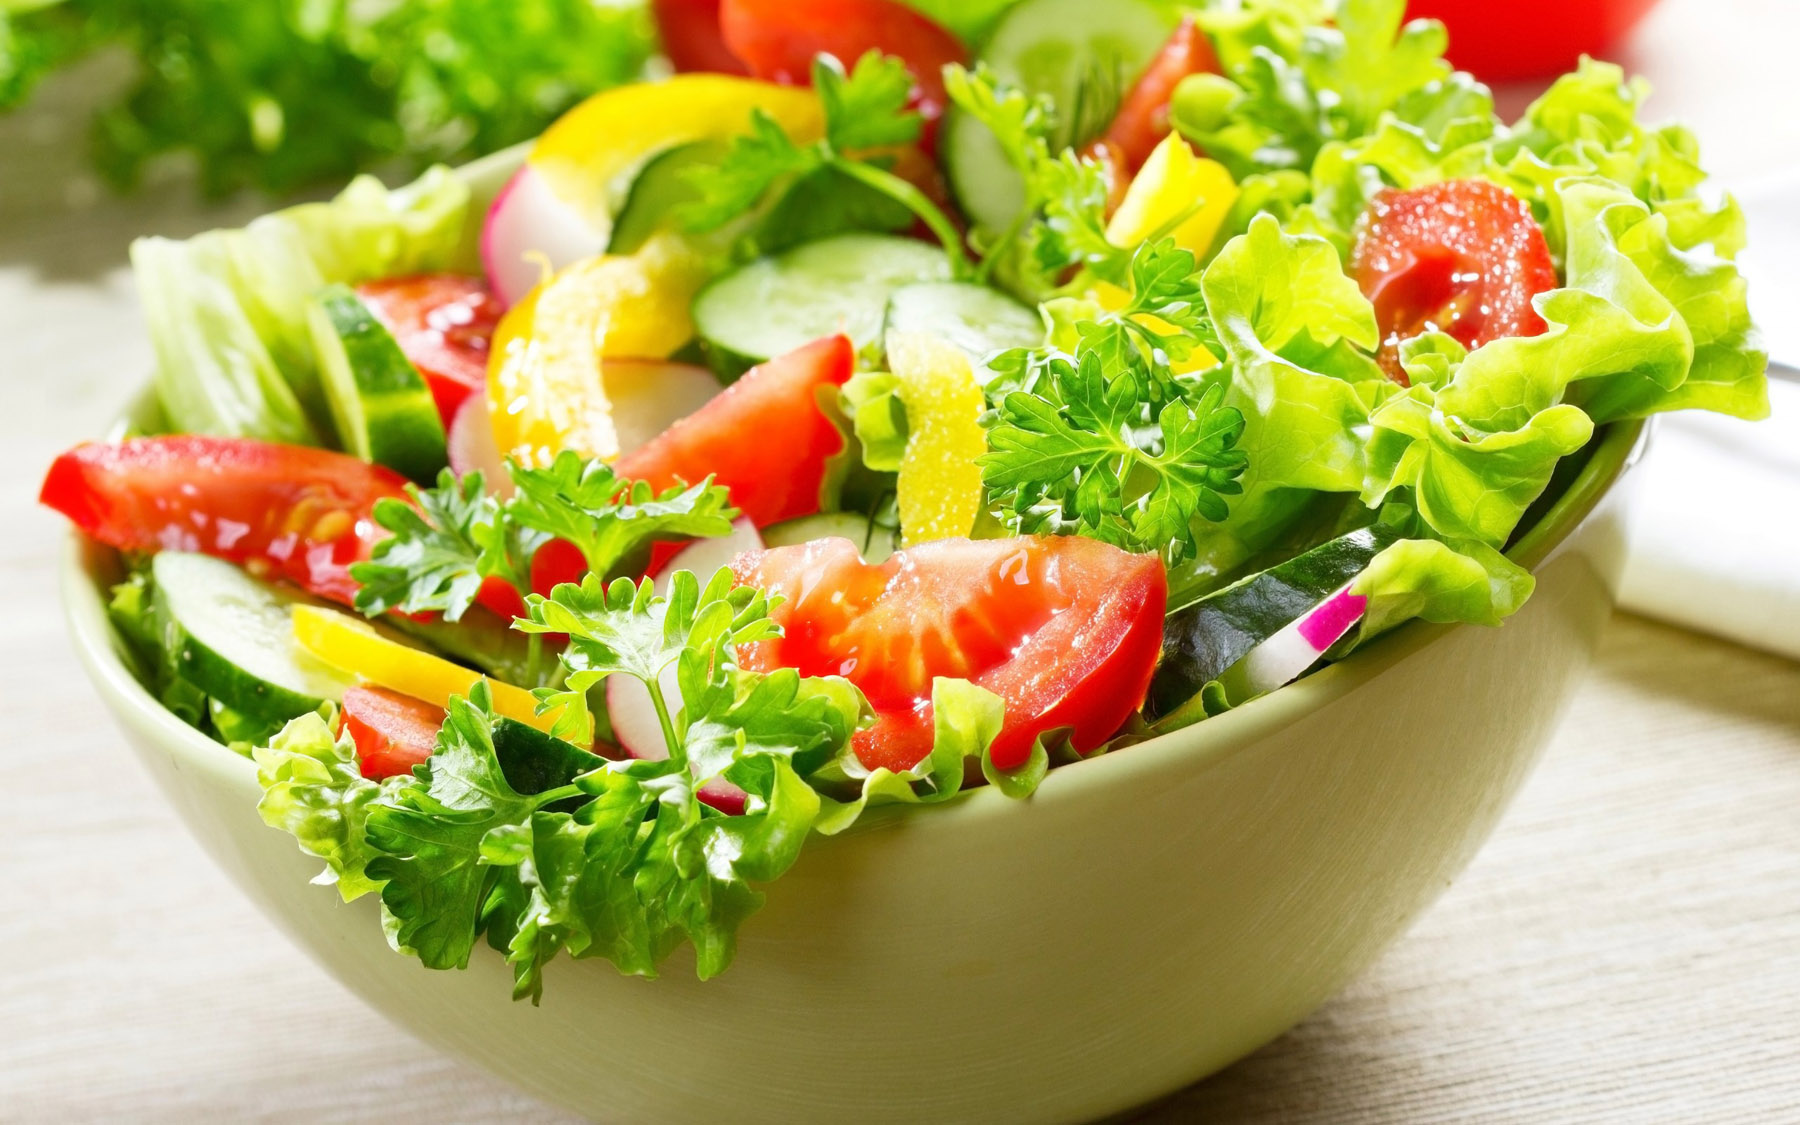 Weigh and pack salad to perfection